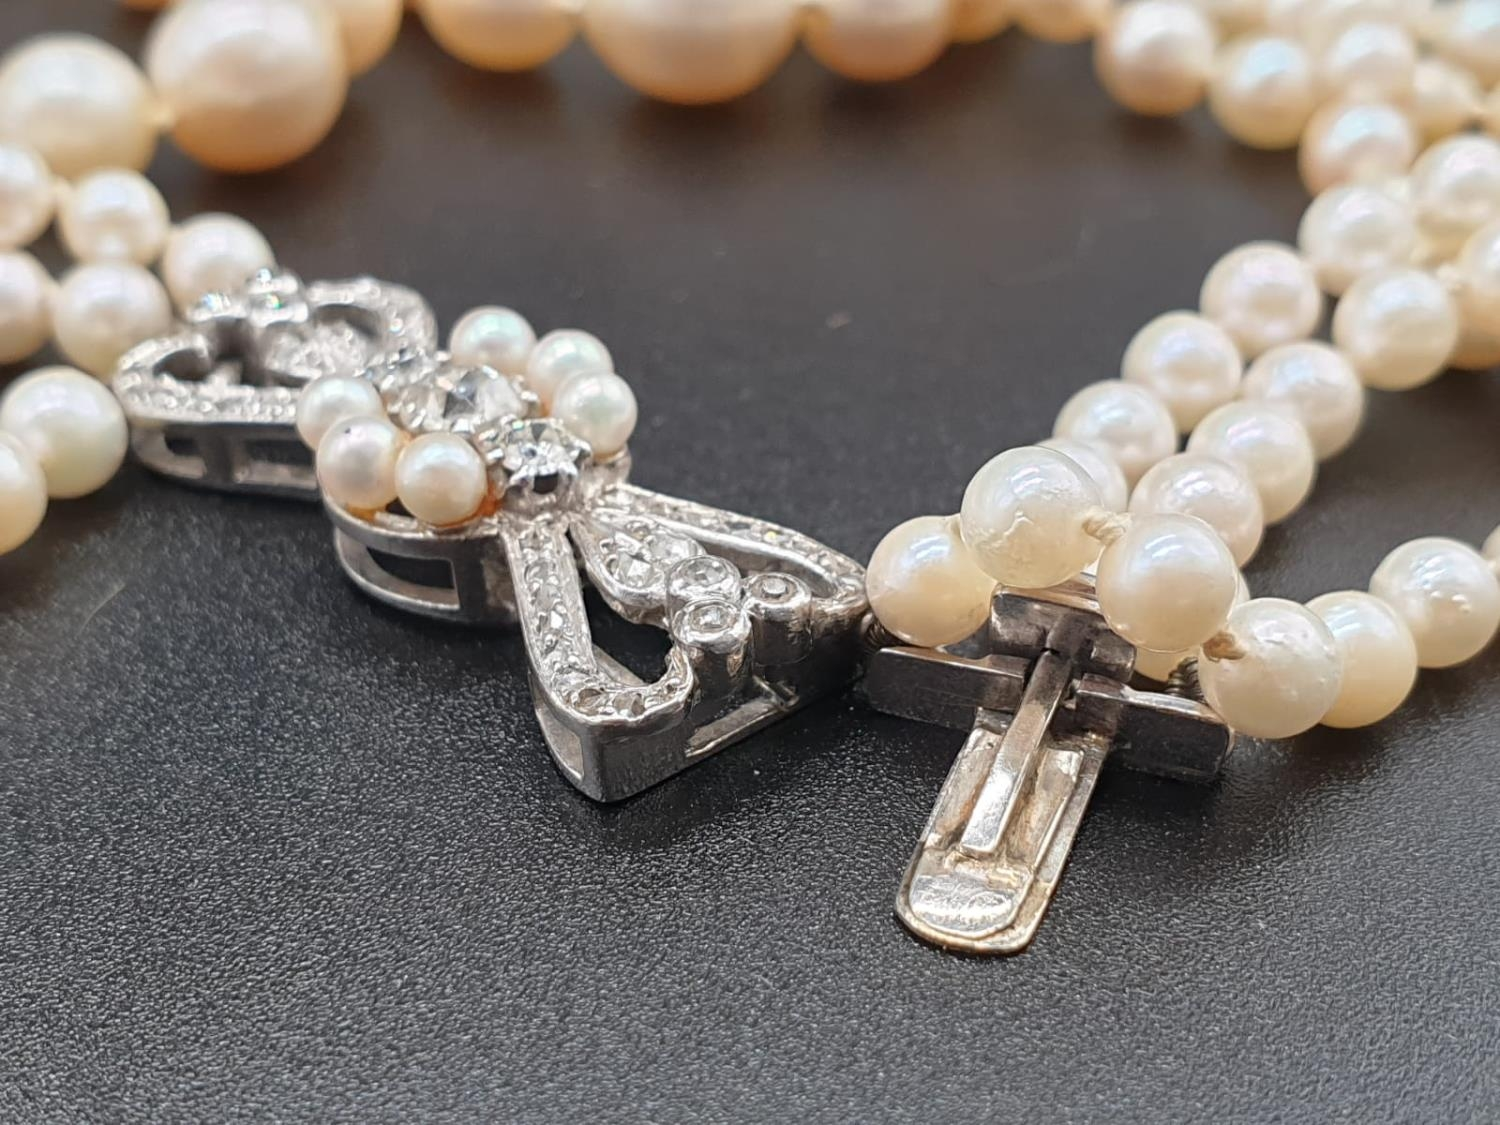 A 3 ROW GRADUATED PEARL NECKLACE WITH PLATINUM AND DIAMOND CLASP 48gms and 18cms in length - Image 5 of 6